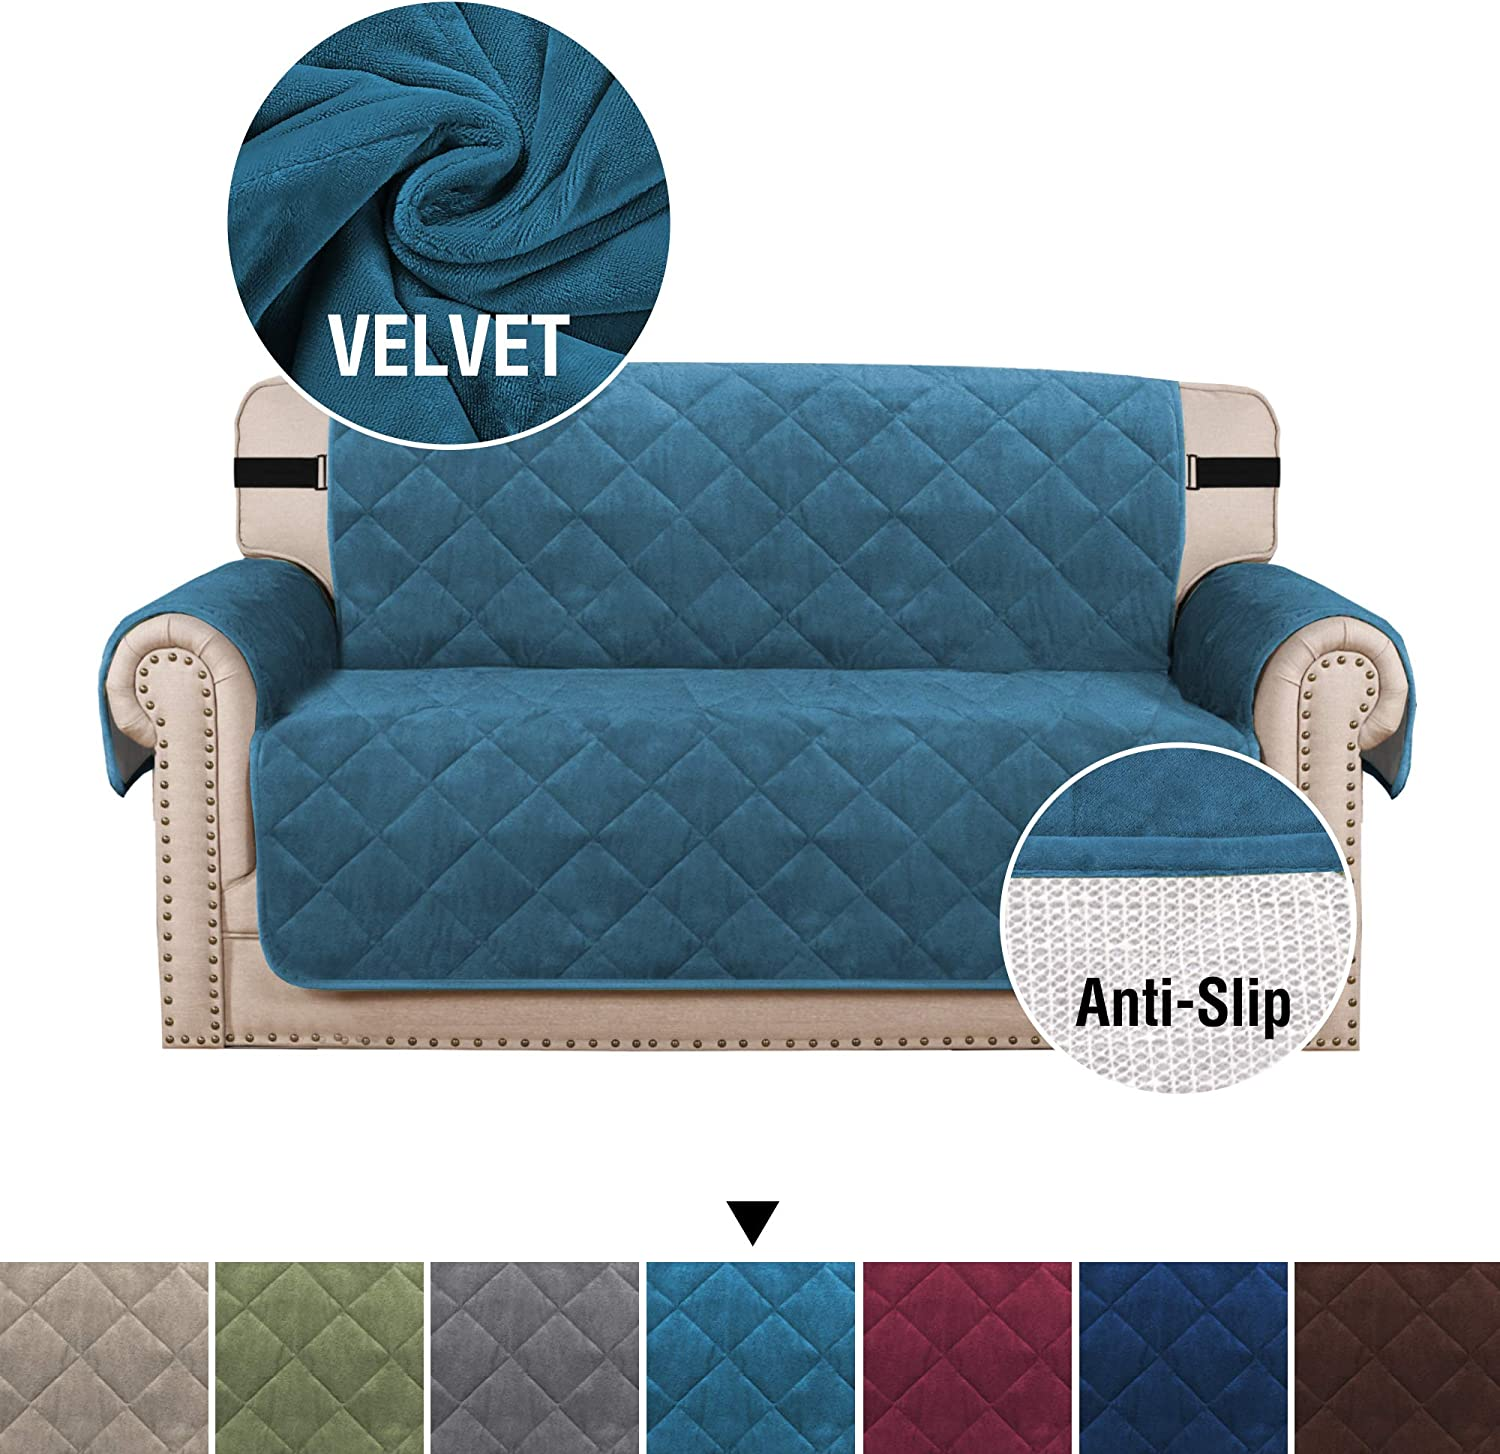 """H.VERSAILTEX Non-Slip Quilted Furniture Protector with 2 pcs Straps and Side Pockets, Seat Width Up to 54"""" Covers for Dogs, Soft Velvet Checked Pattern Loveseat Slipcover (Love Seat: Peacock Blue)"""